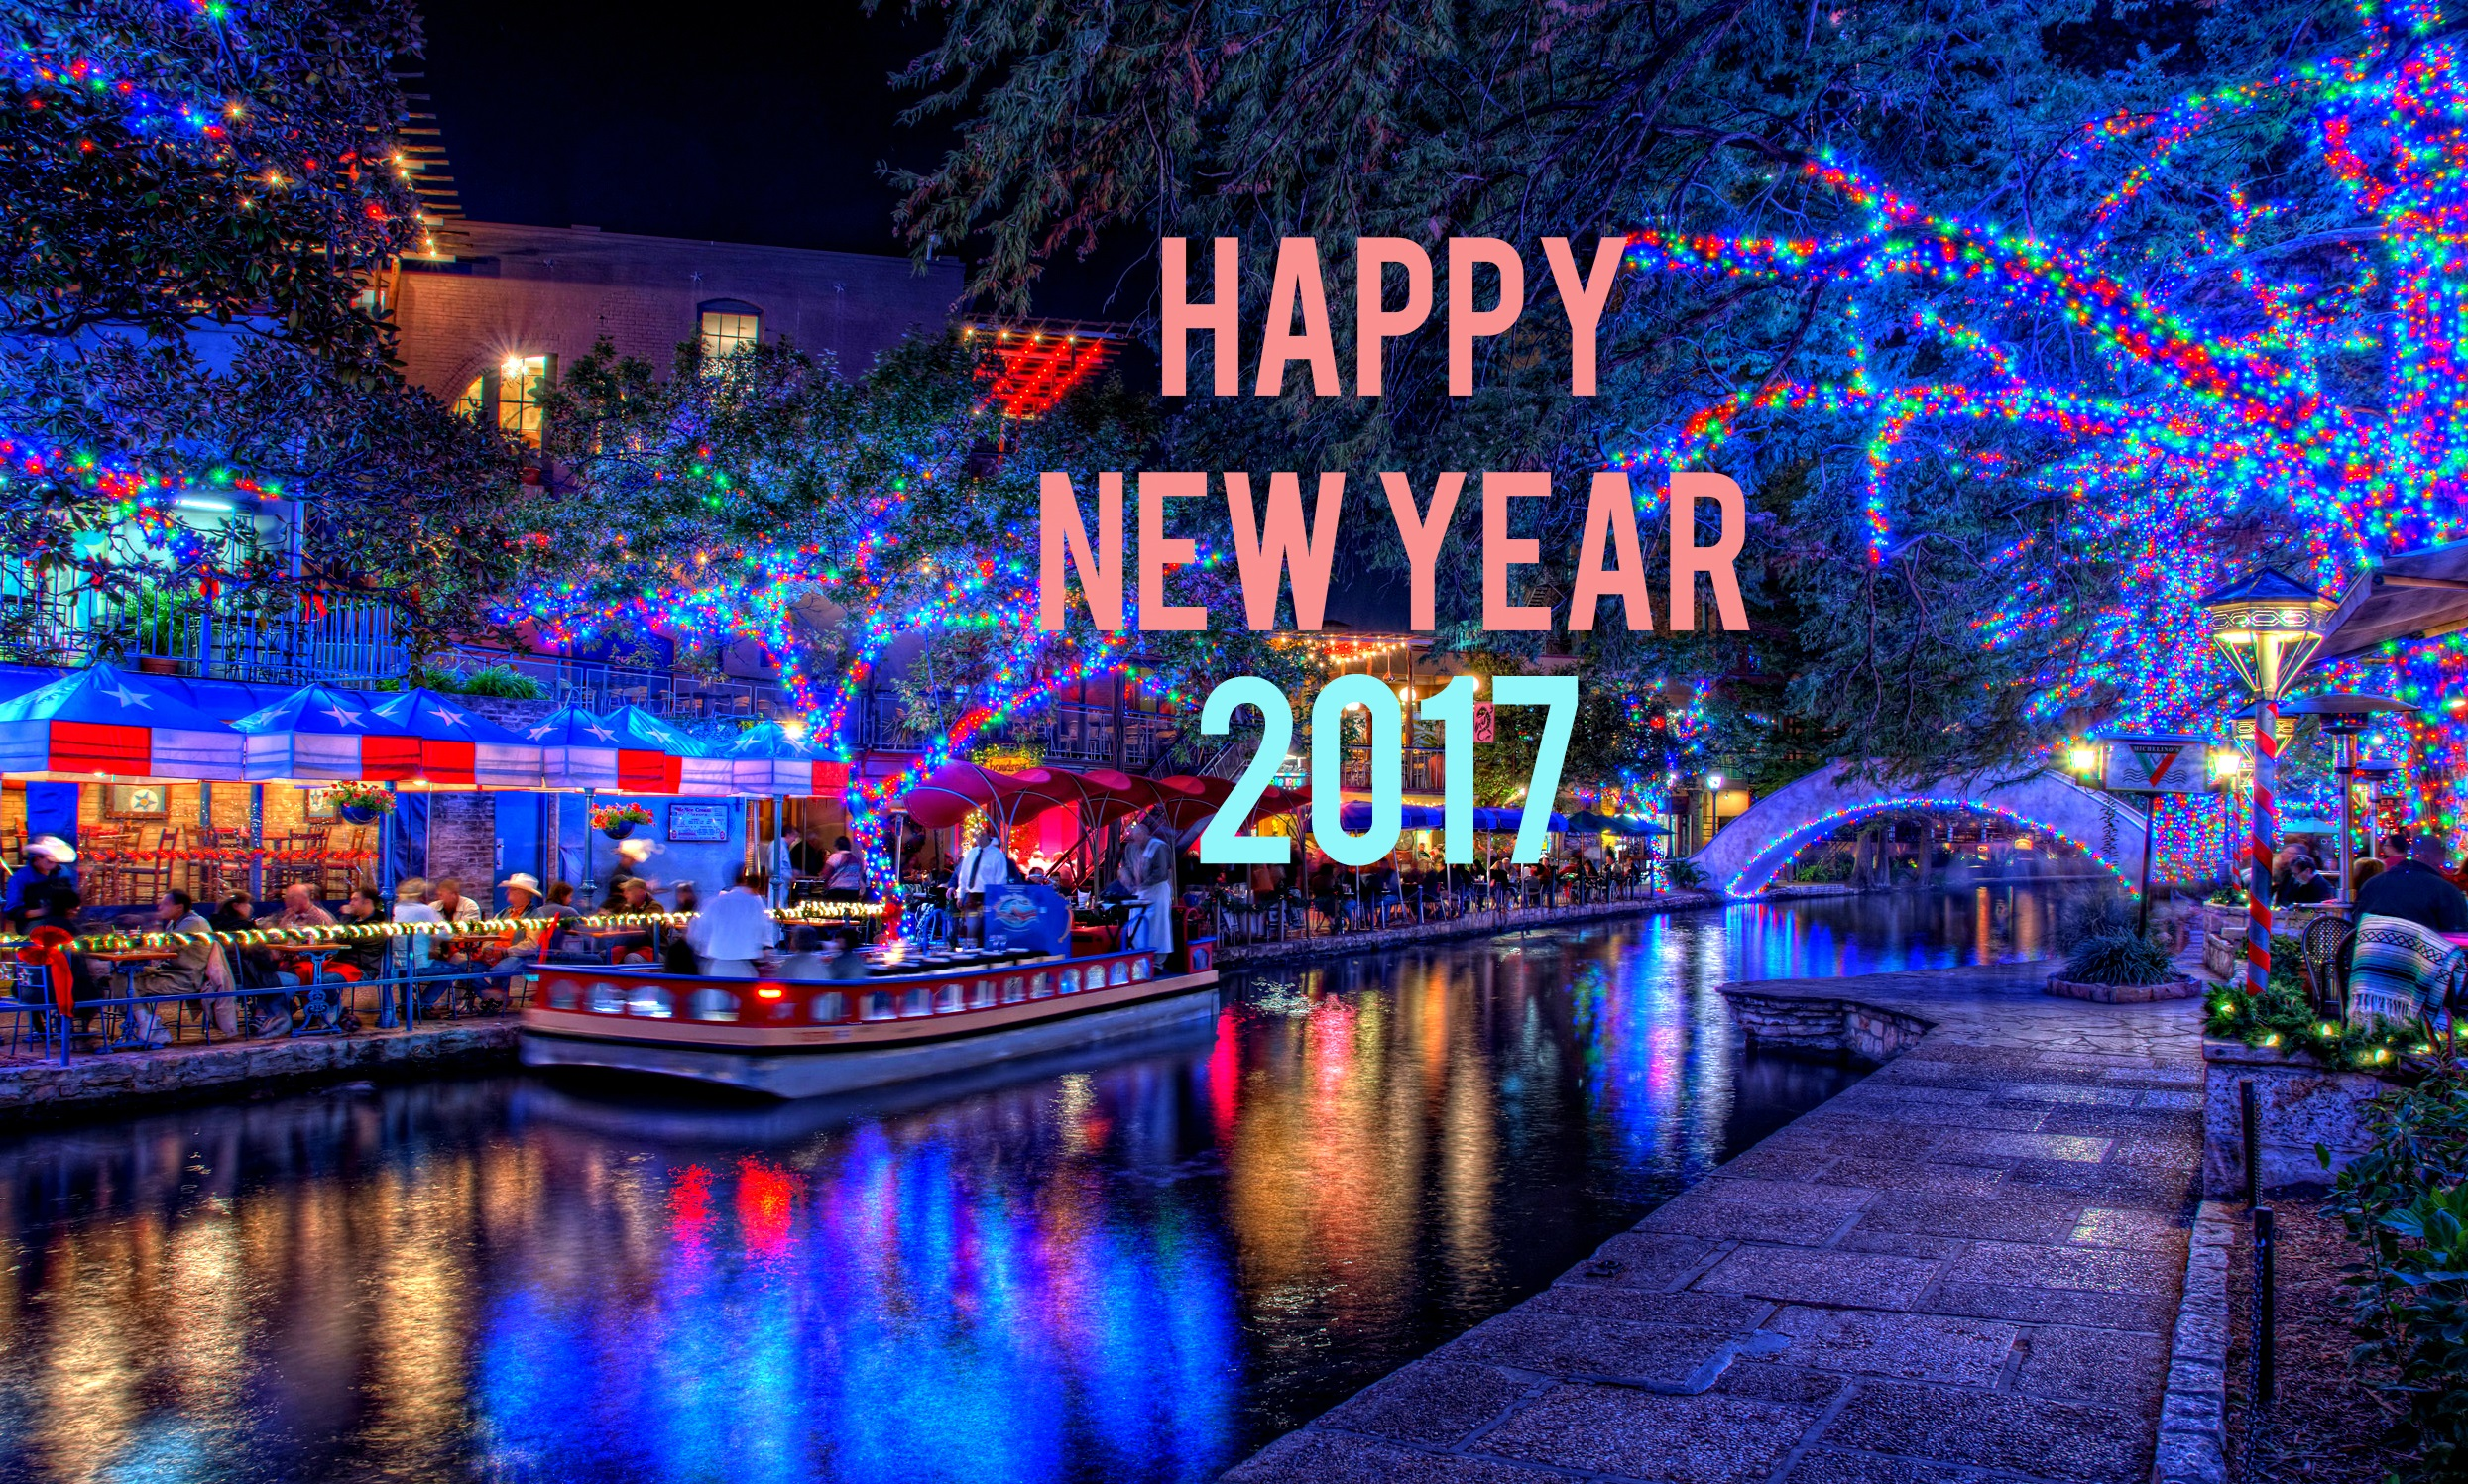 New Year 2017 Hd Wallpaper: Happy New Year 2018 HD Wallpapers, Images, Pictures